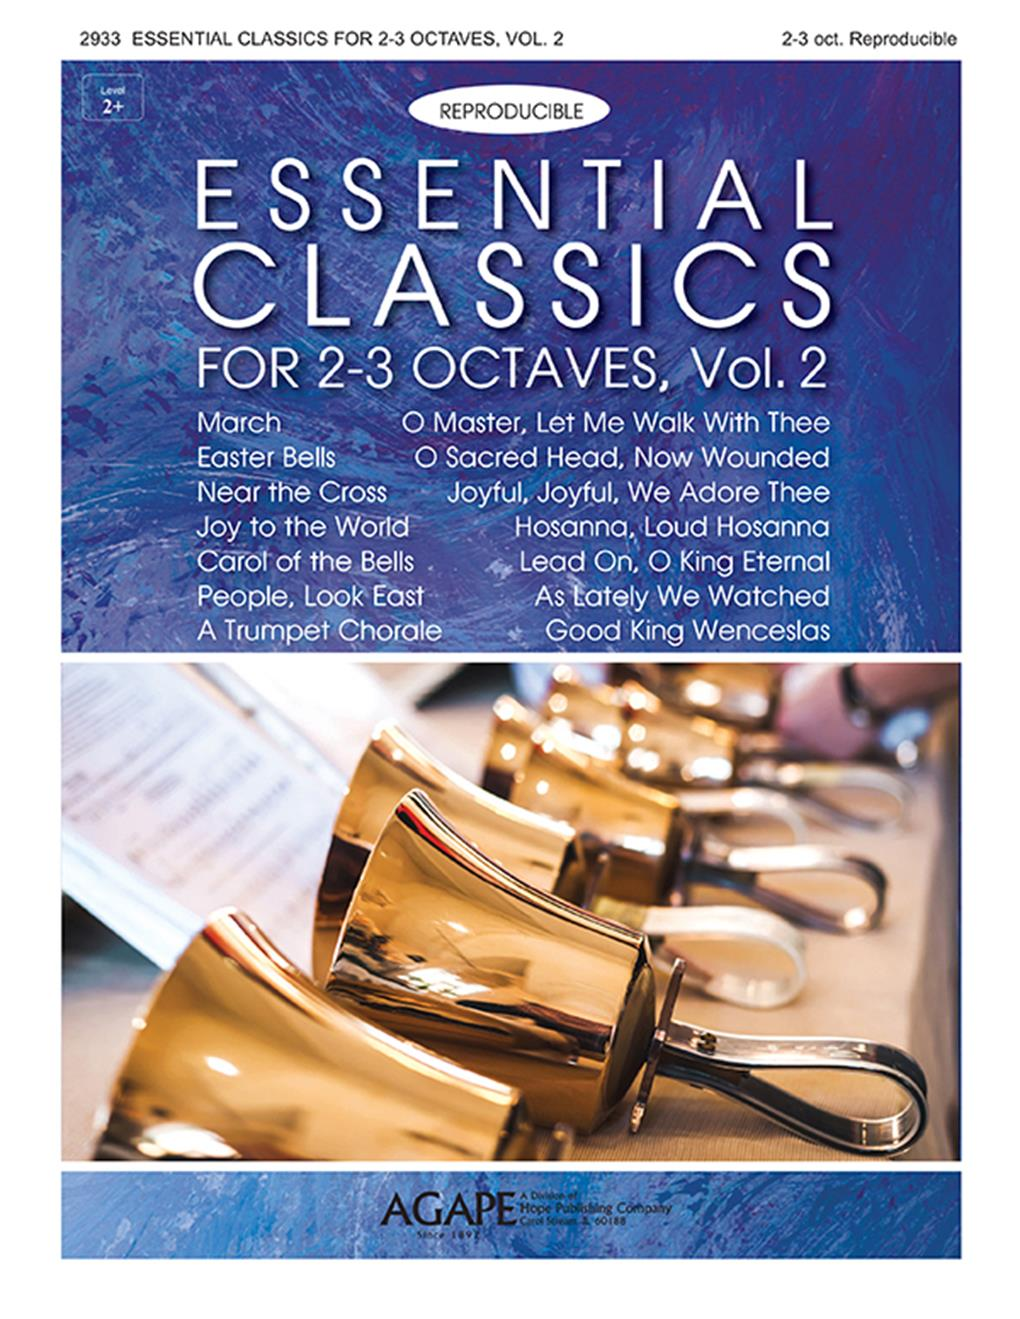 Essential Classics for 2-3 Octaves Vol. 2 (Reproducible) Cover Image